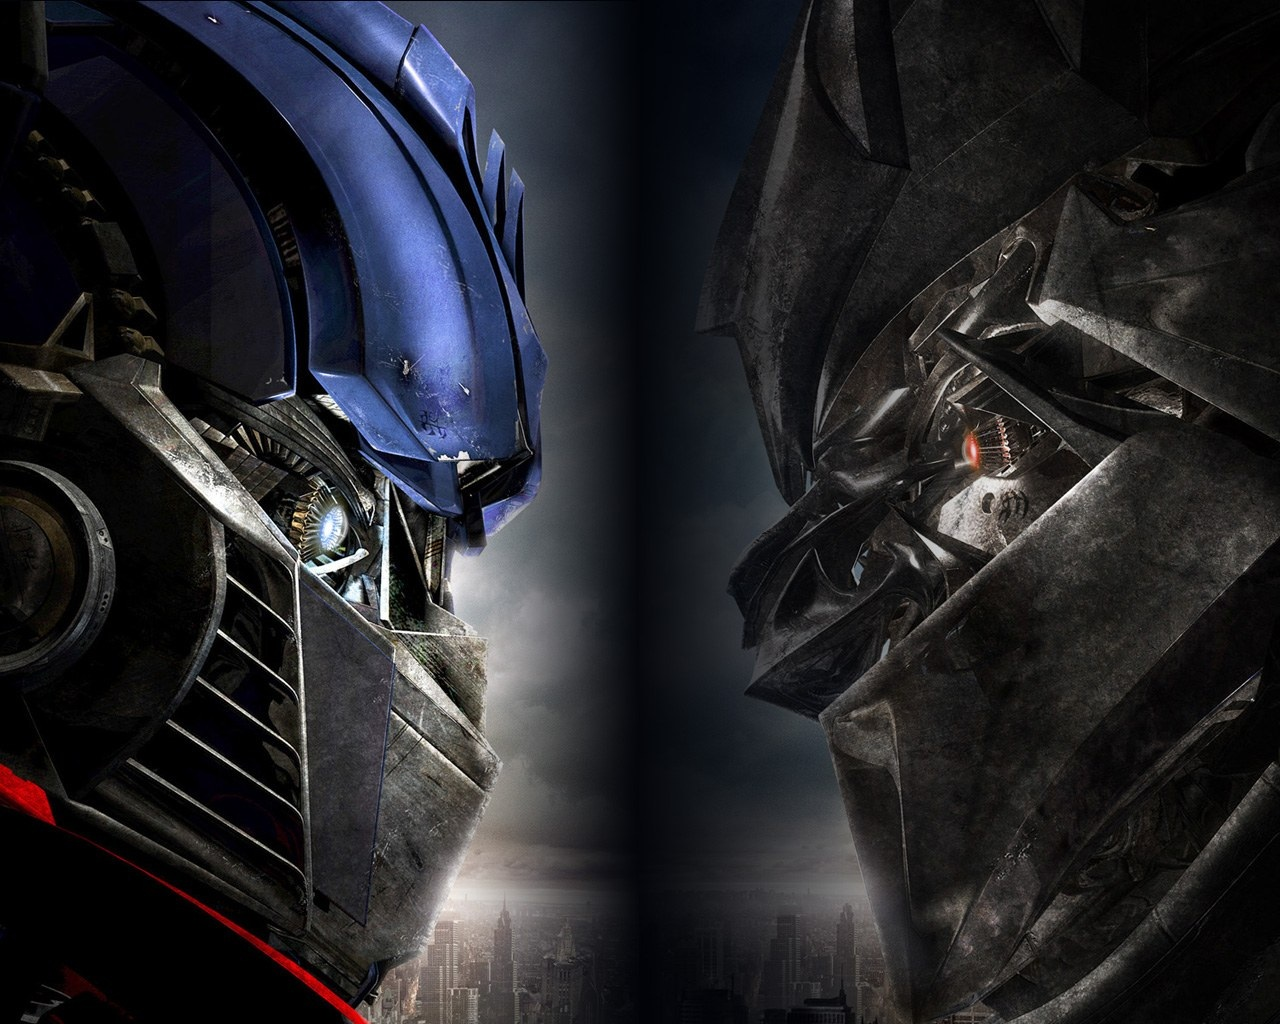 'Transformers 4′ gets a Promo Poster Already?